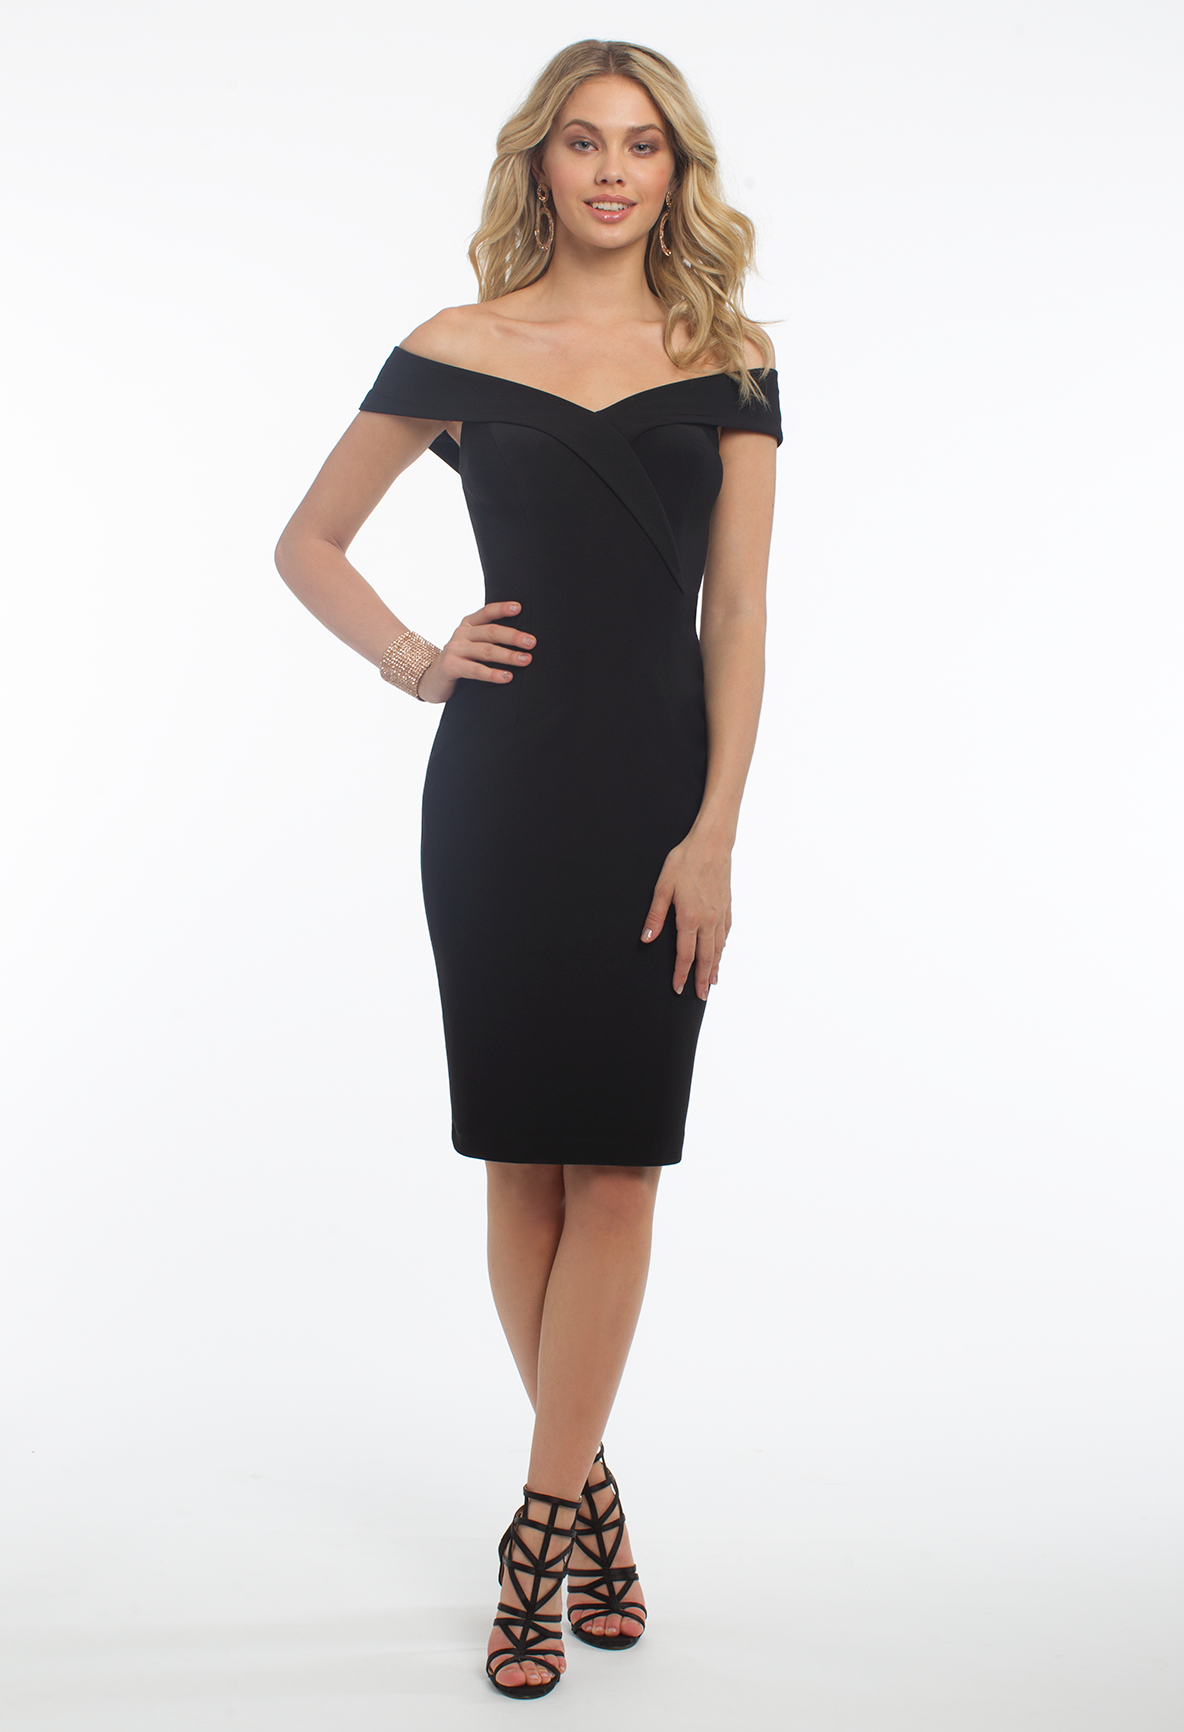 Get Old Hollywood Glam Vibes The Moment You Slip On This Stunning Cocktail Dress With Its Portrait Neckline Fitted Bodi Dresses Party Dress Hot Party Dresses [ 1732 x 1184 Pixel ]